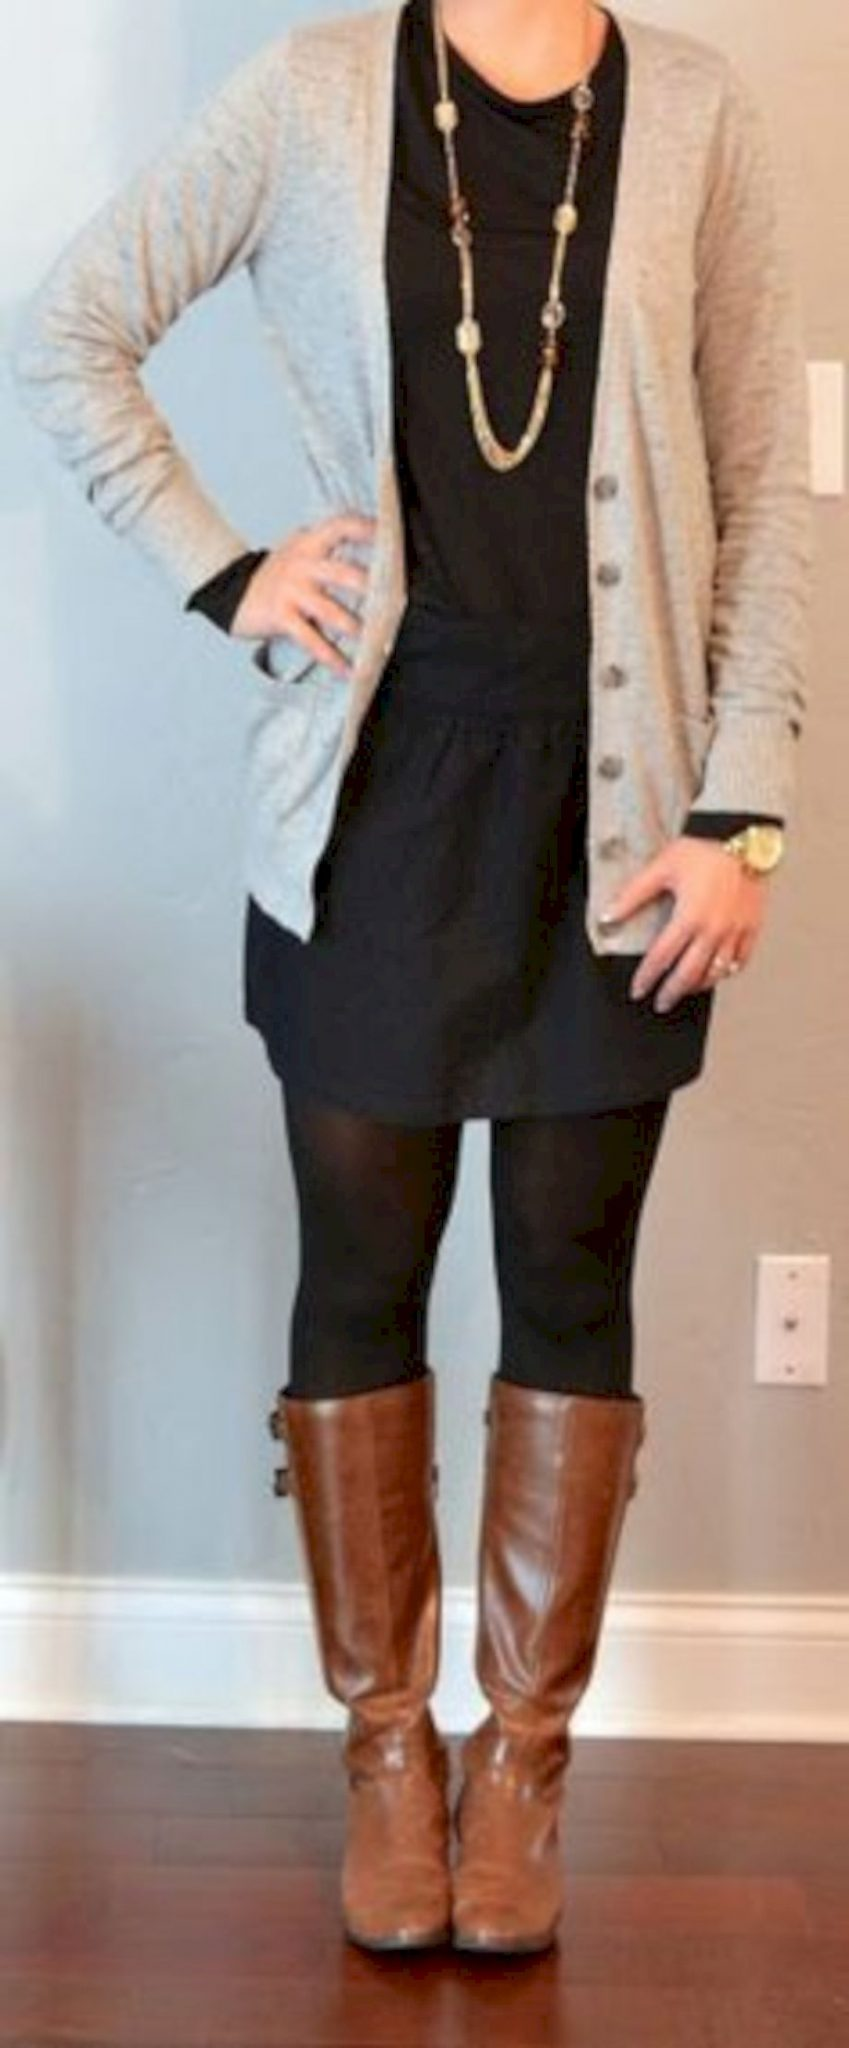 Cardigan outfit 21